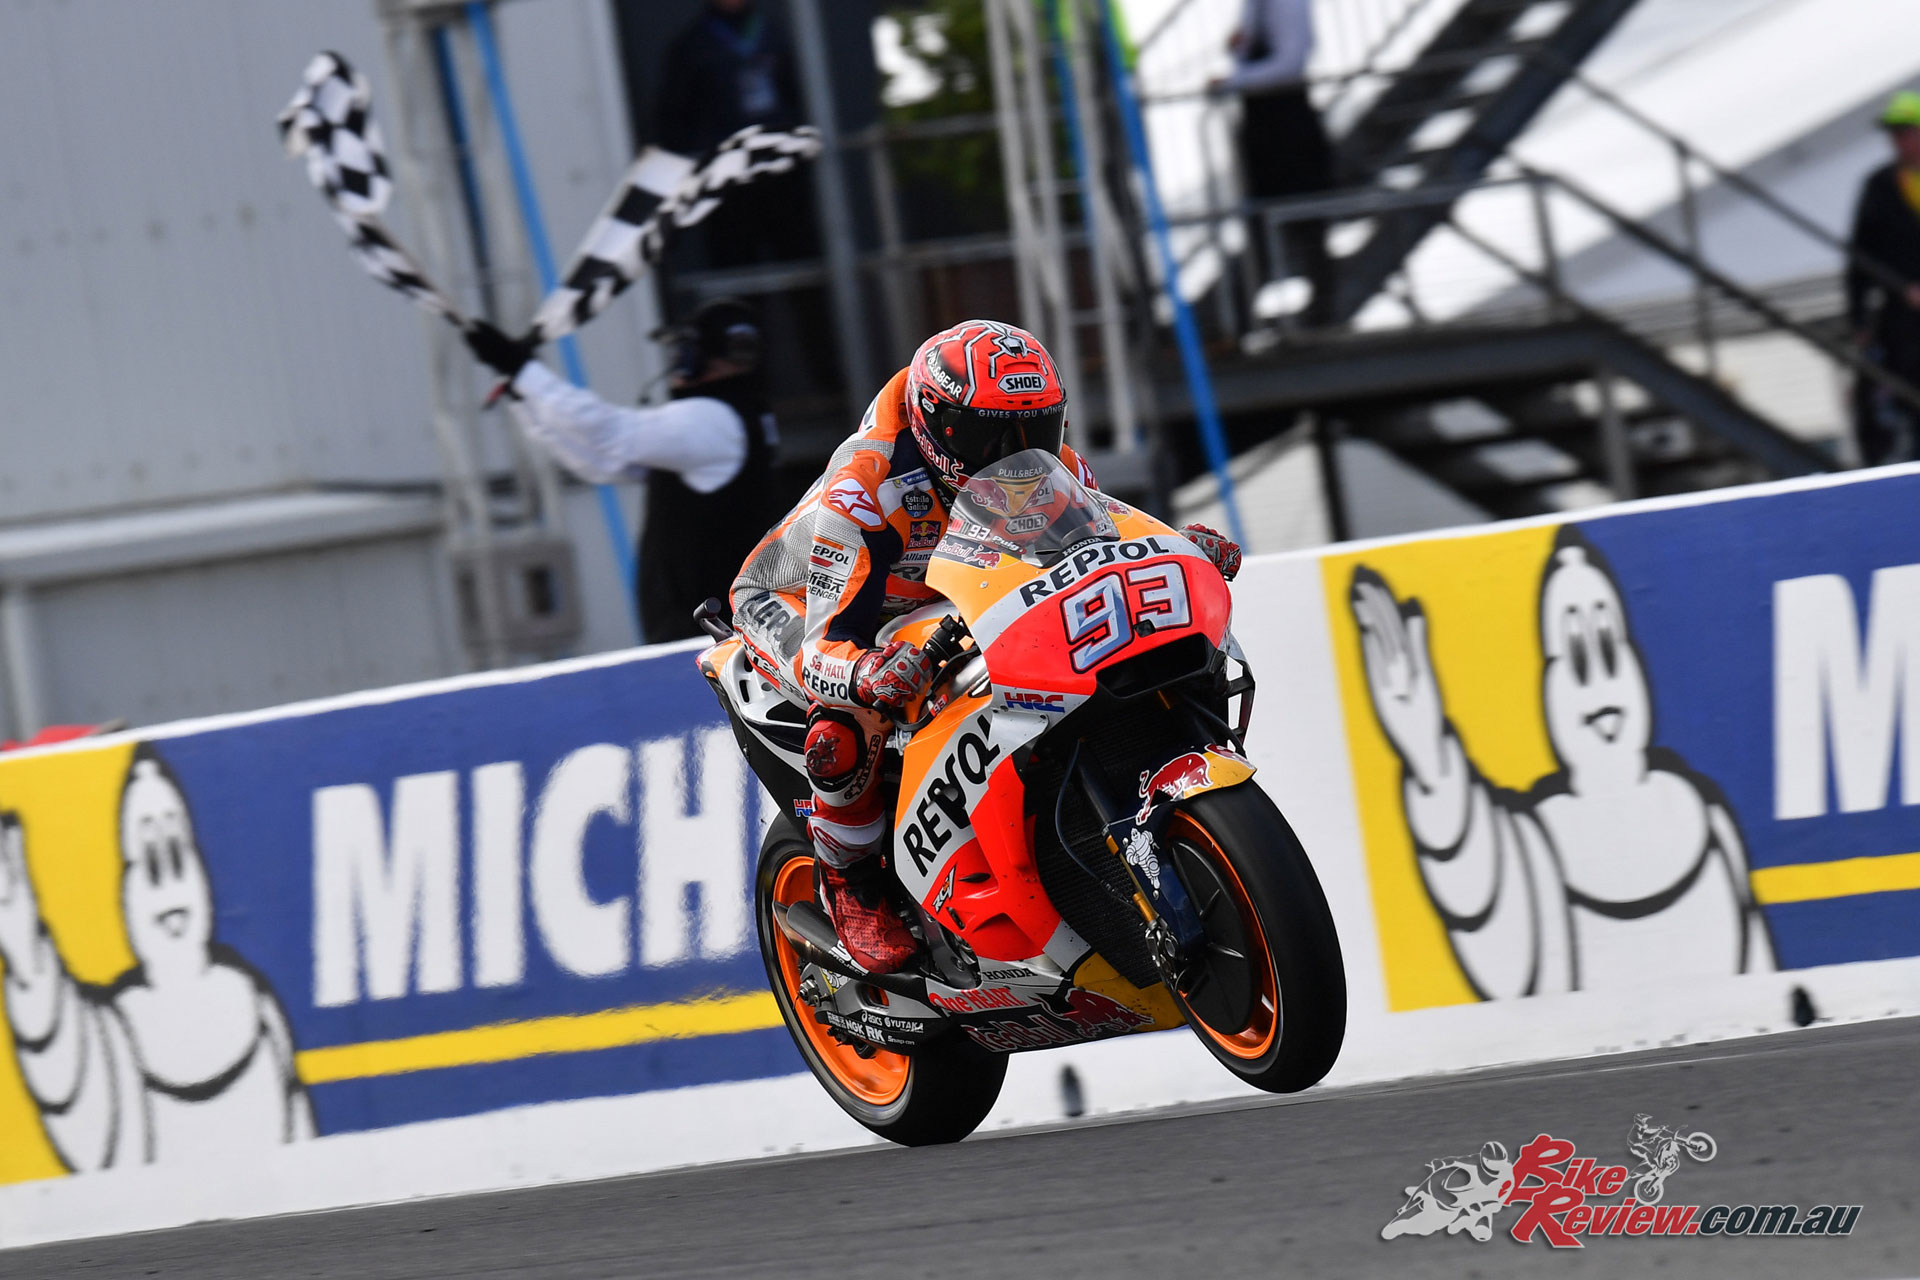 Marquez holds the advantage following his Phillip Island win